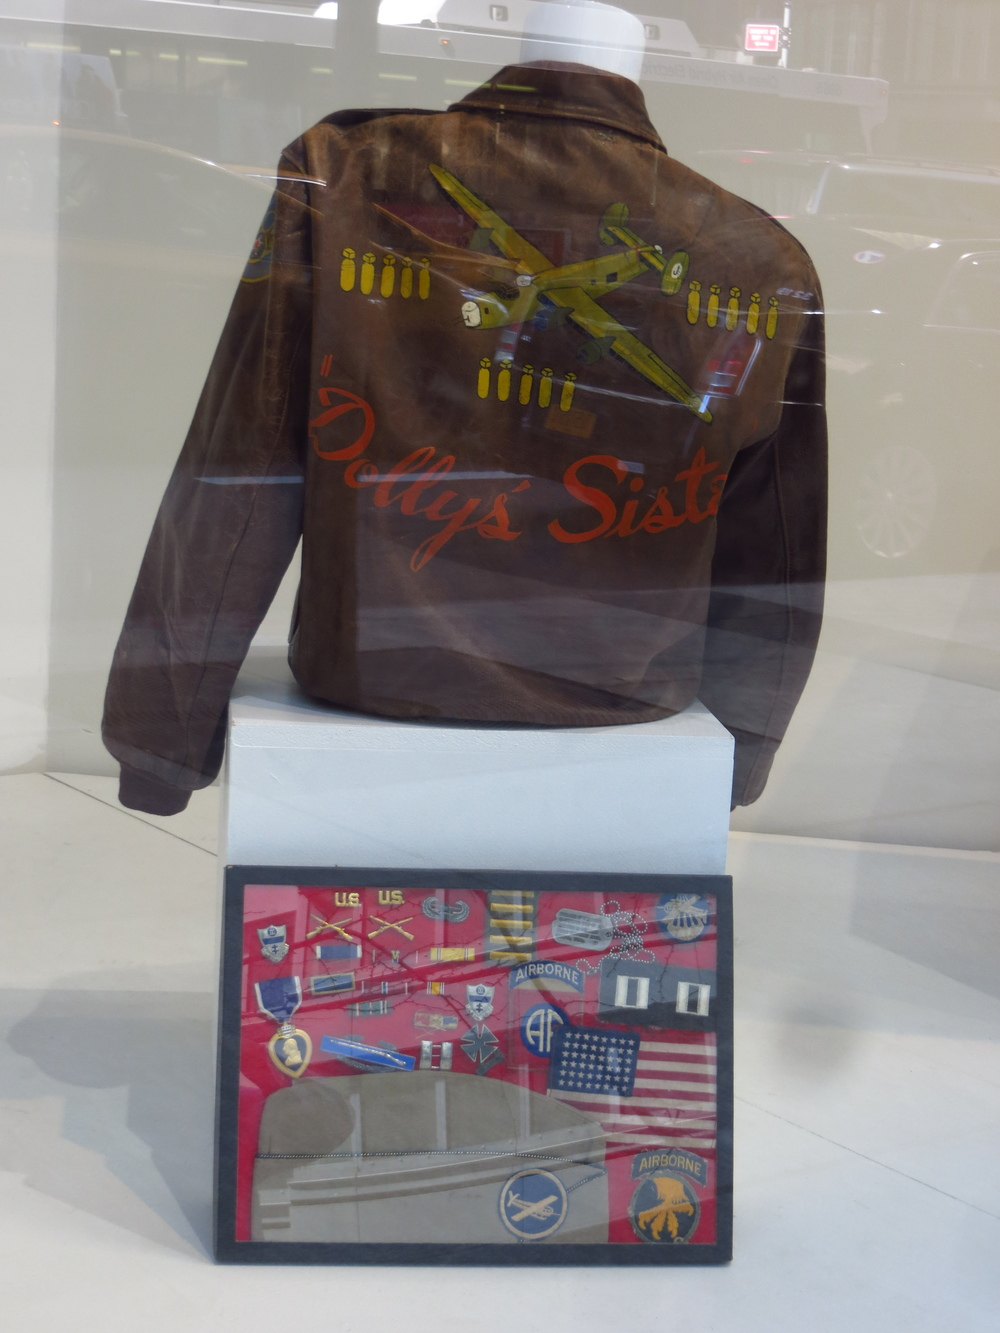 WWII Bomber Jacket for auction